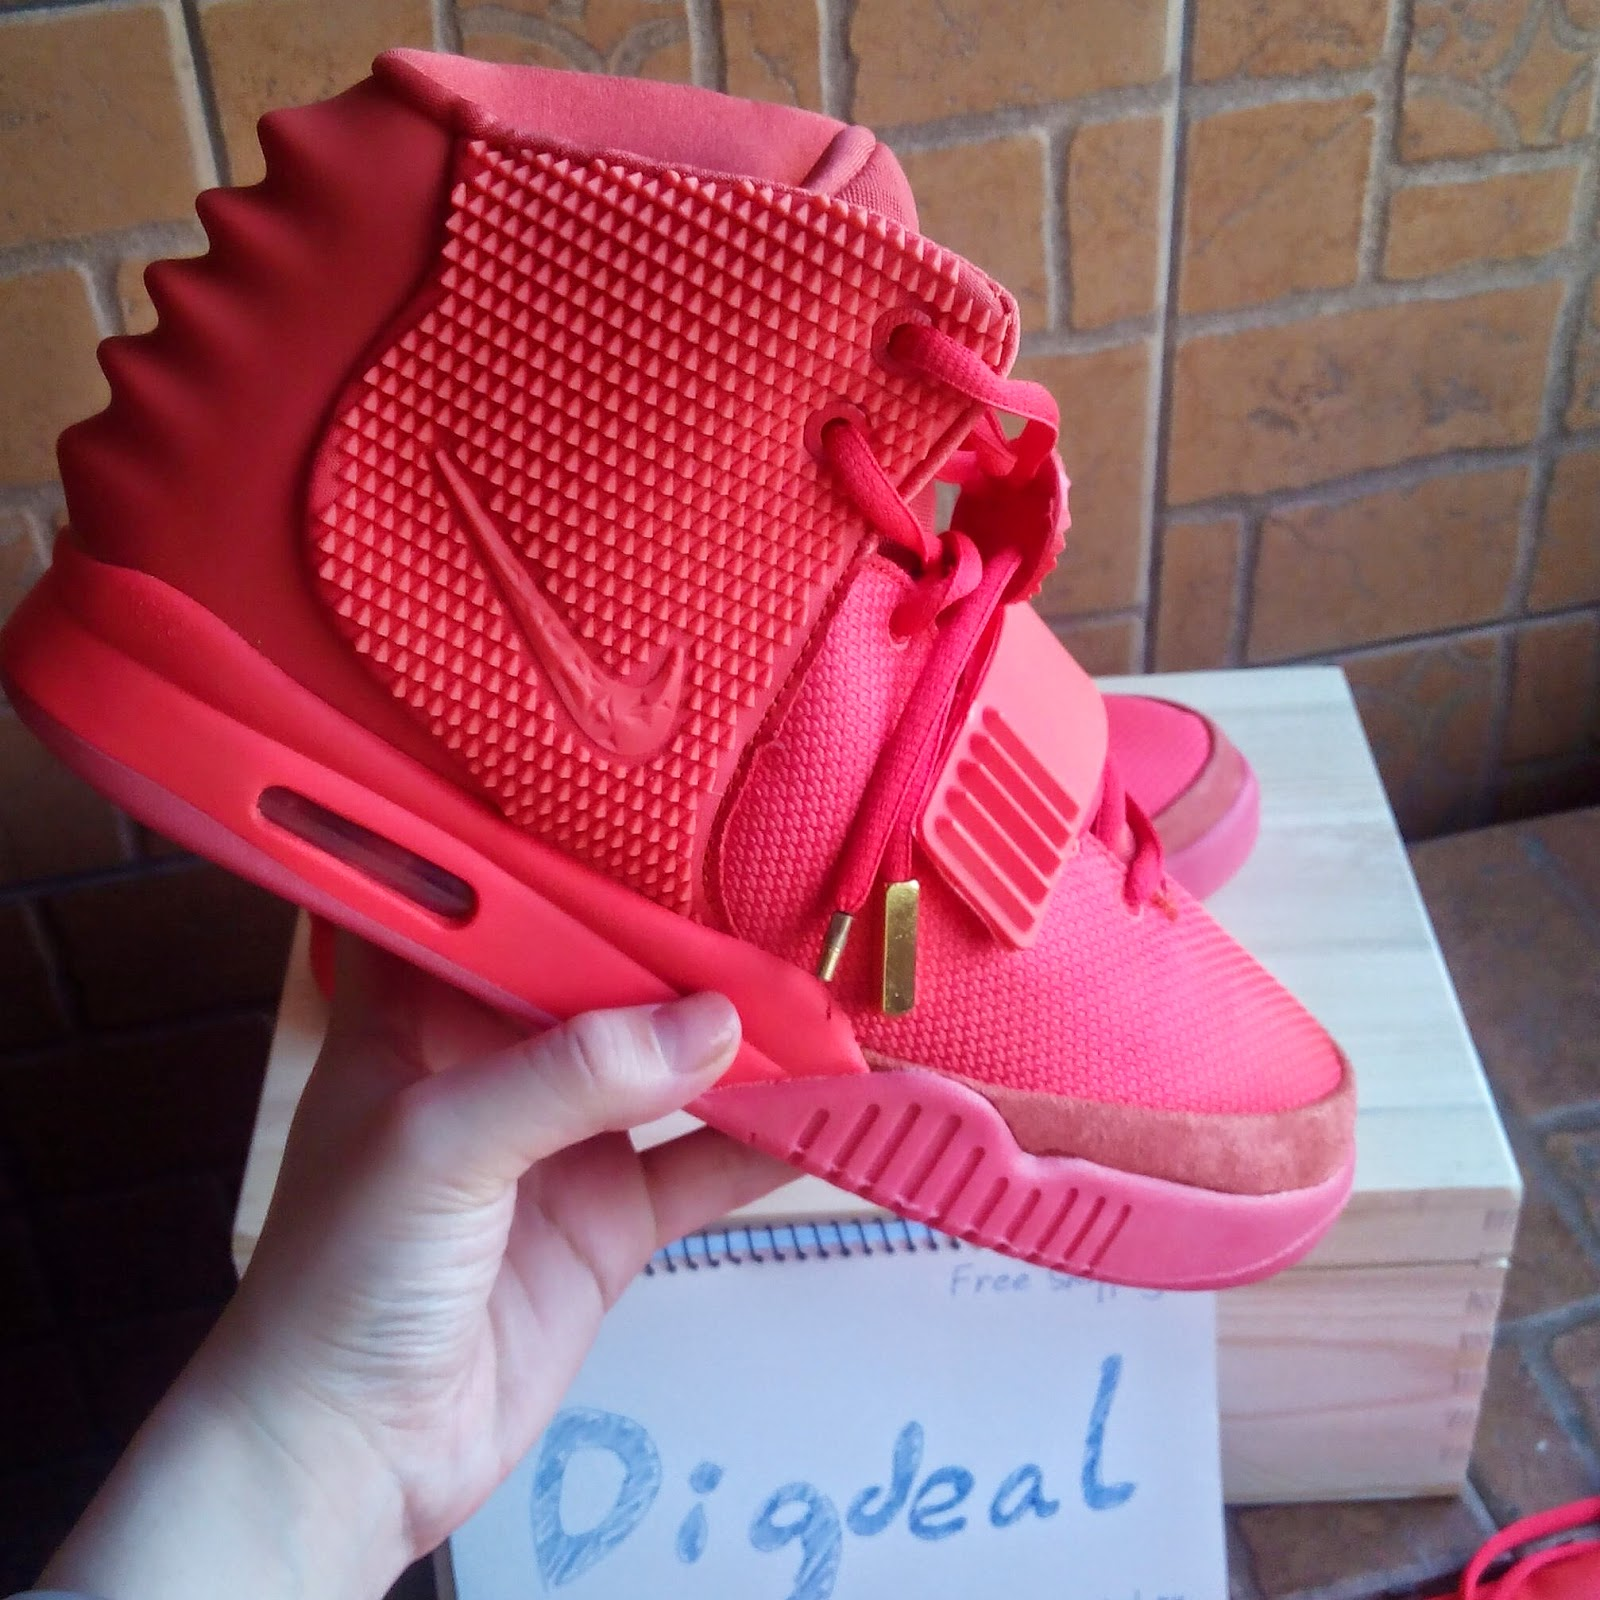 9d614af9870617 Hotly Nike Jordan Shoes Shop  Super Perfect Nike Air Yeezy 2 Red ...